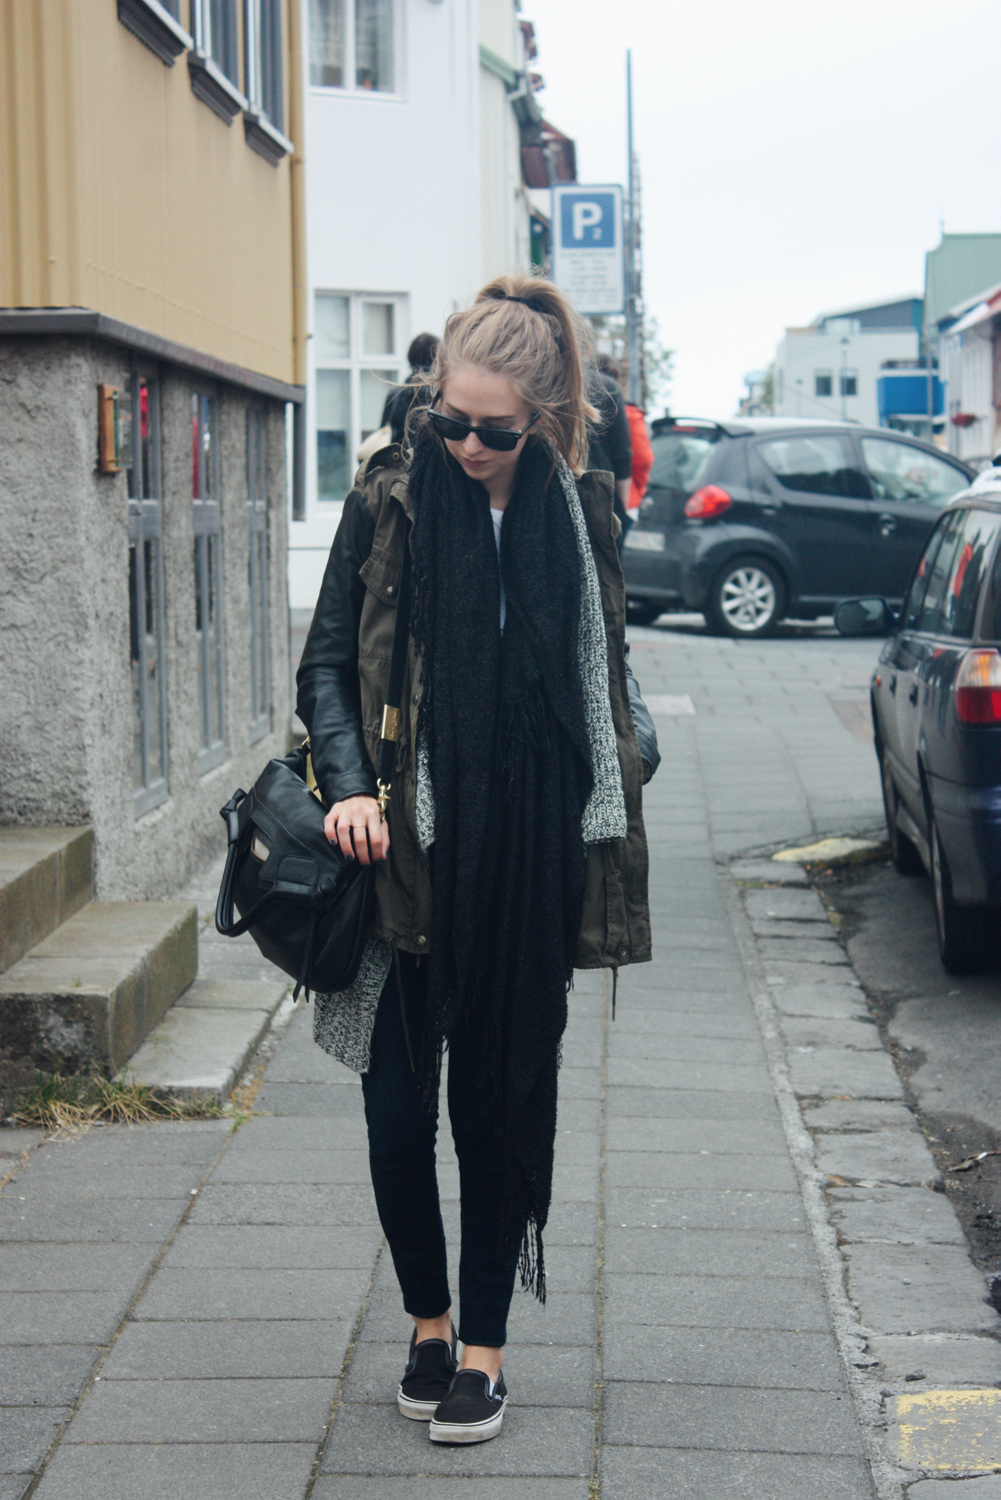 truelane in Free People, Foley + Corinna, Aritzia, Vans and Gap in Reykjavik, Iceland.png